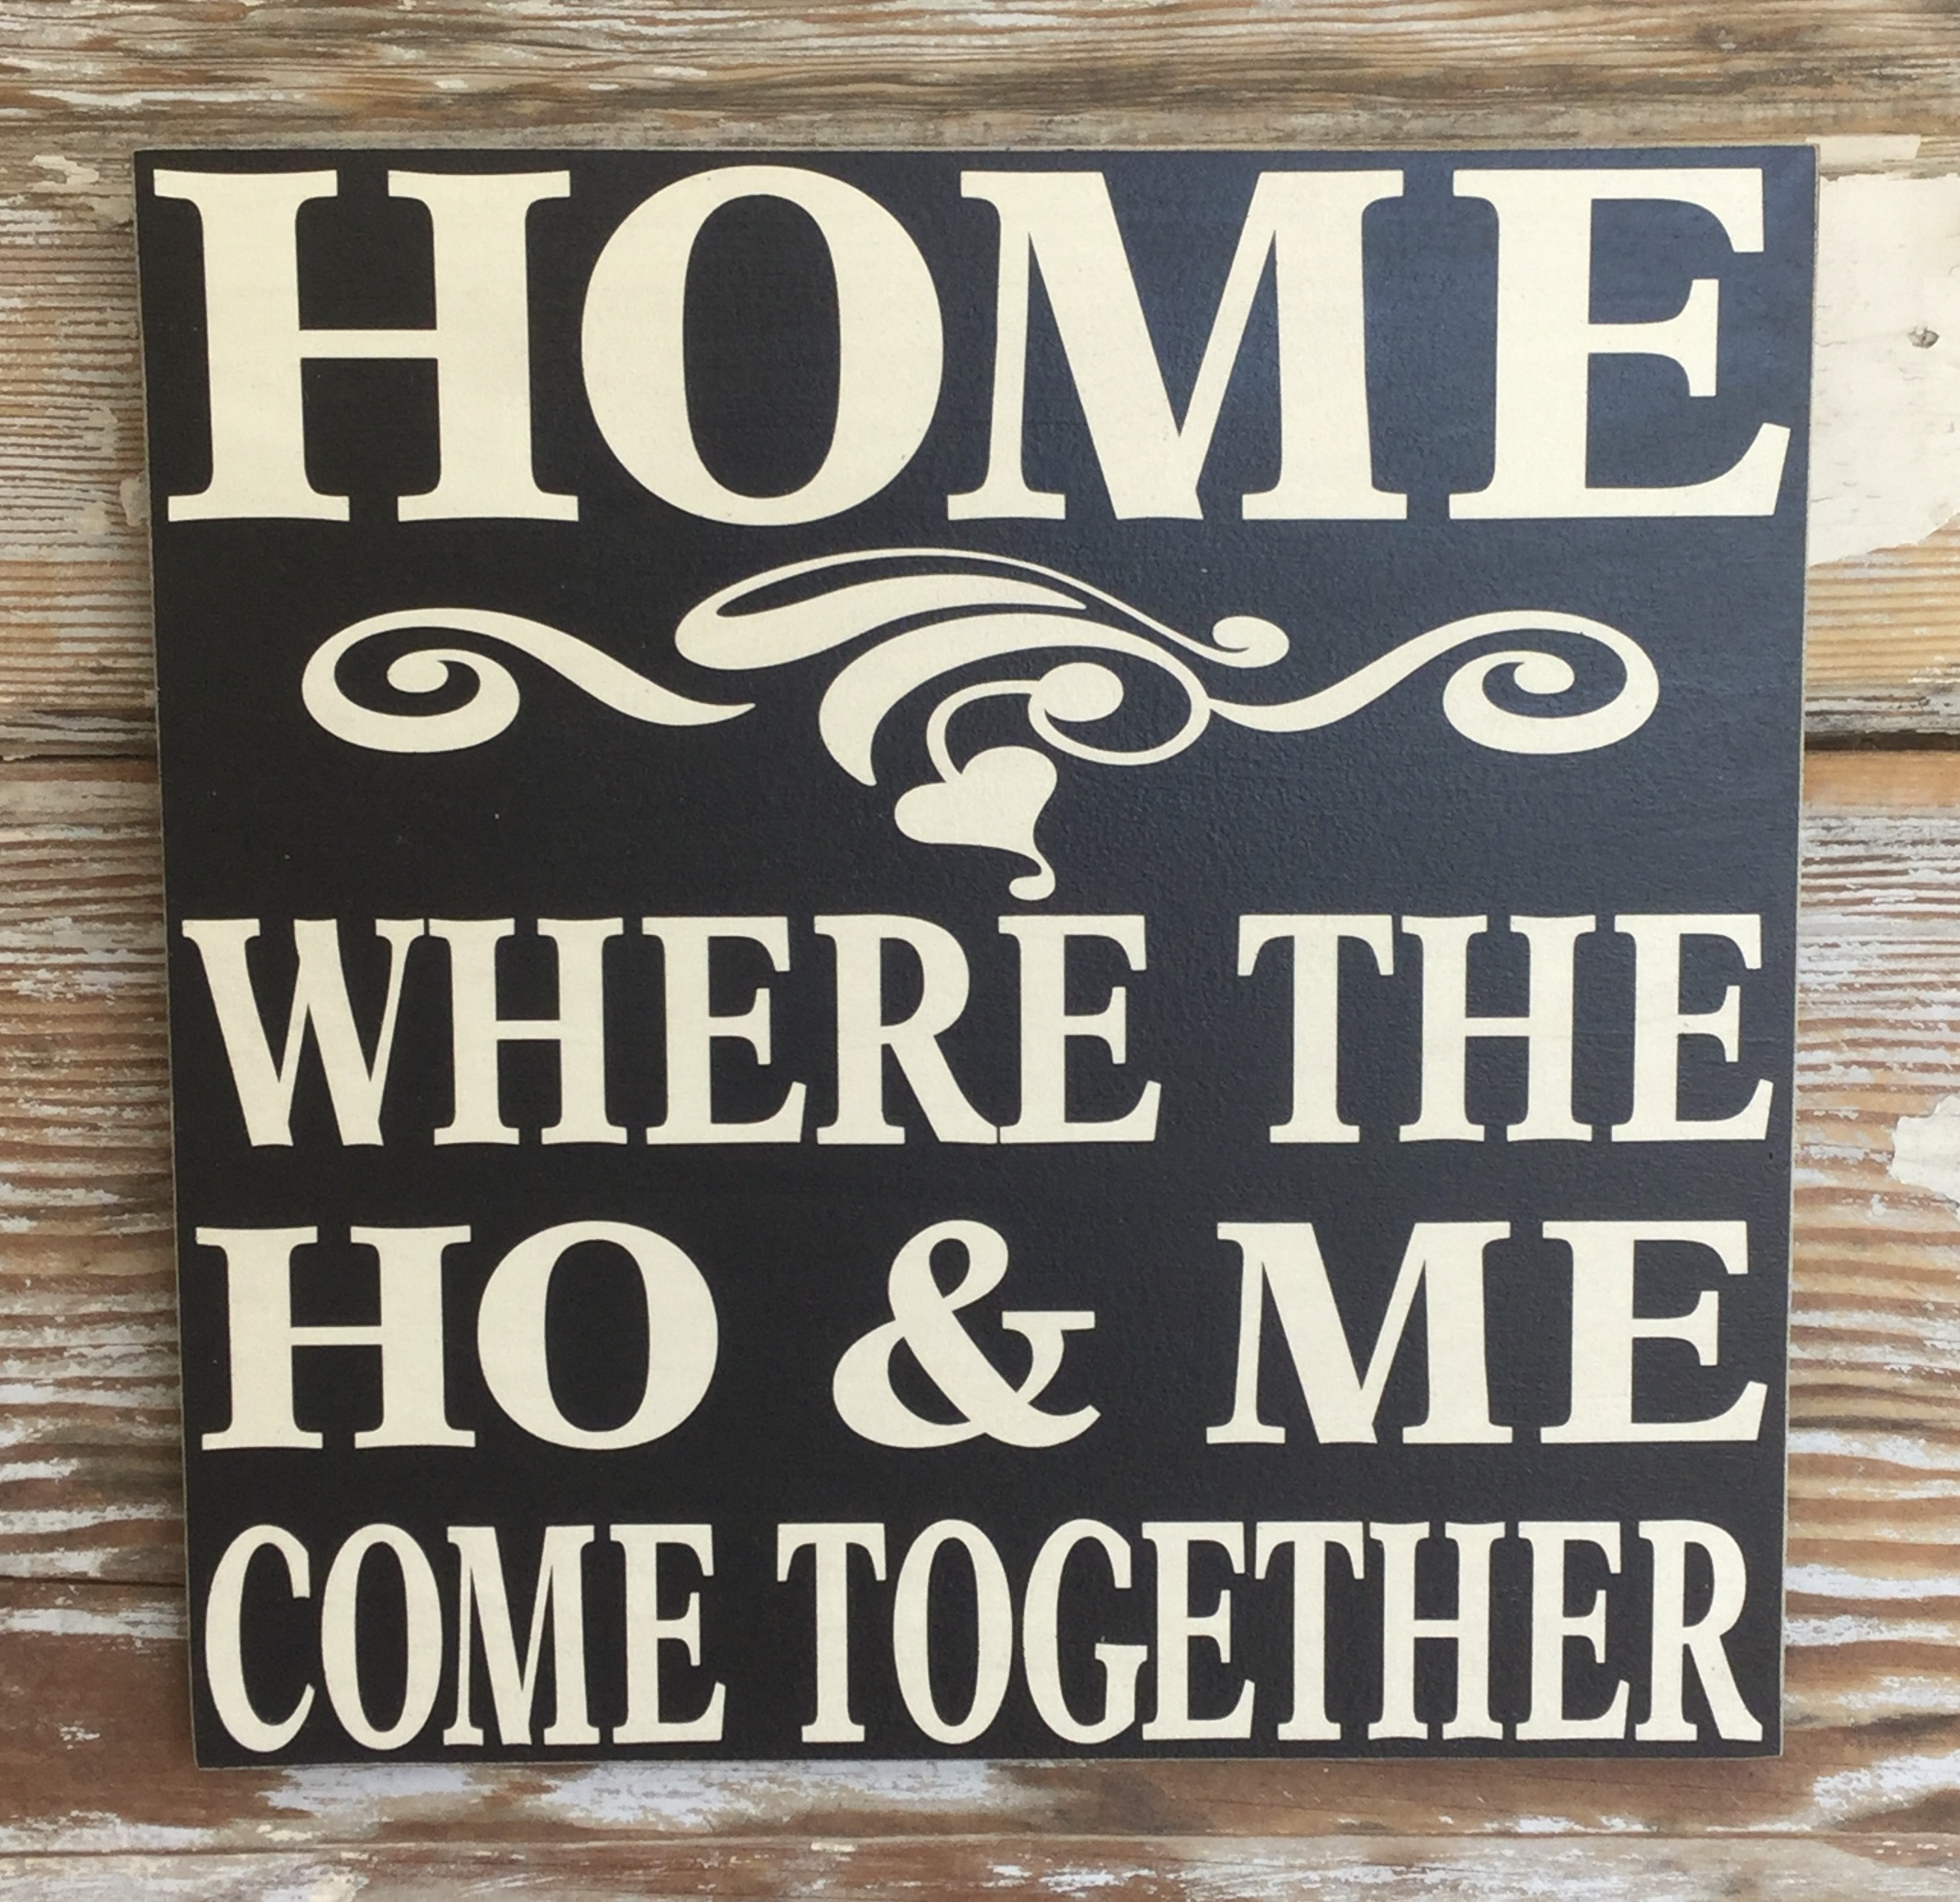 Home Where The Ho Amp Me Come Together Funny Wood Sign